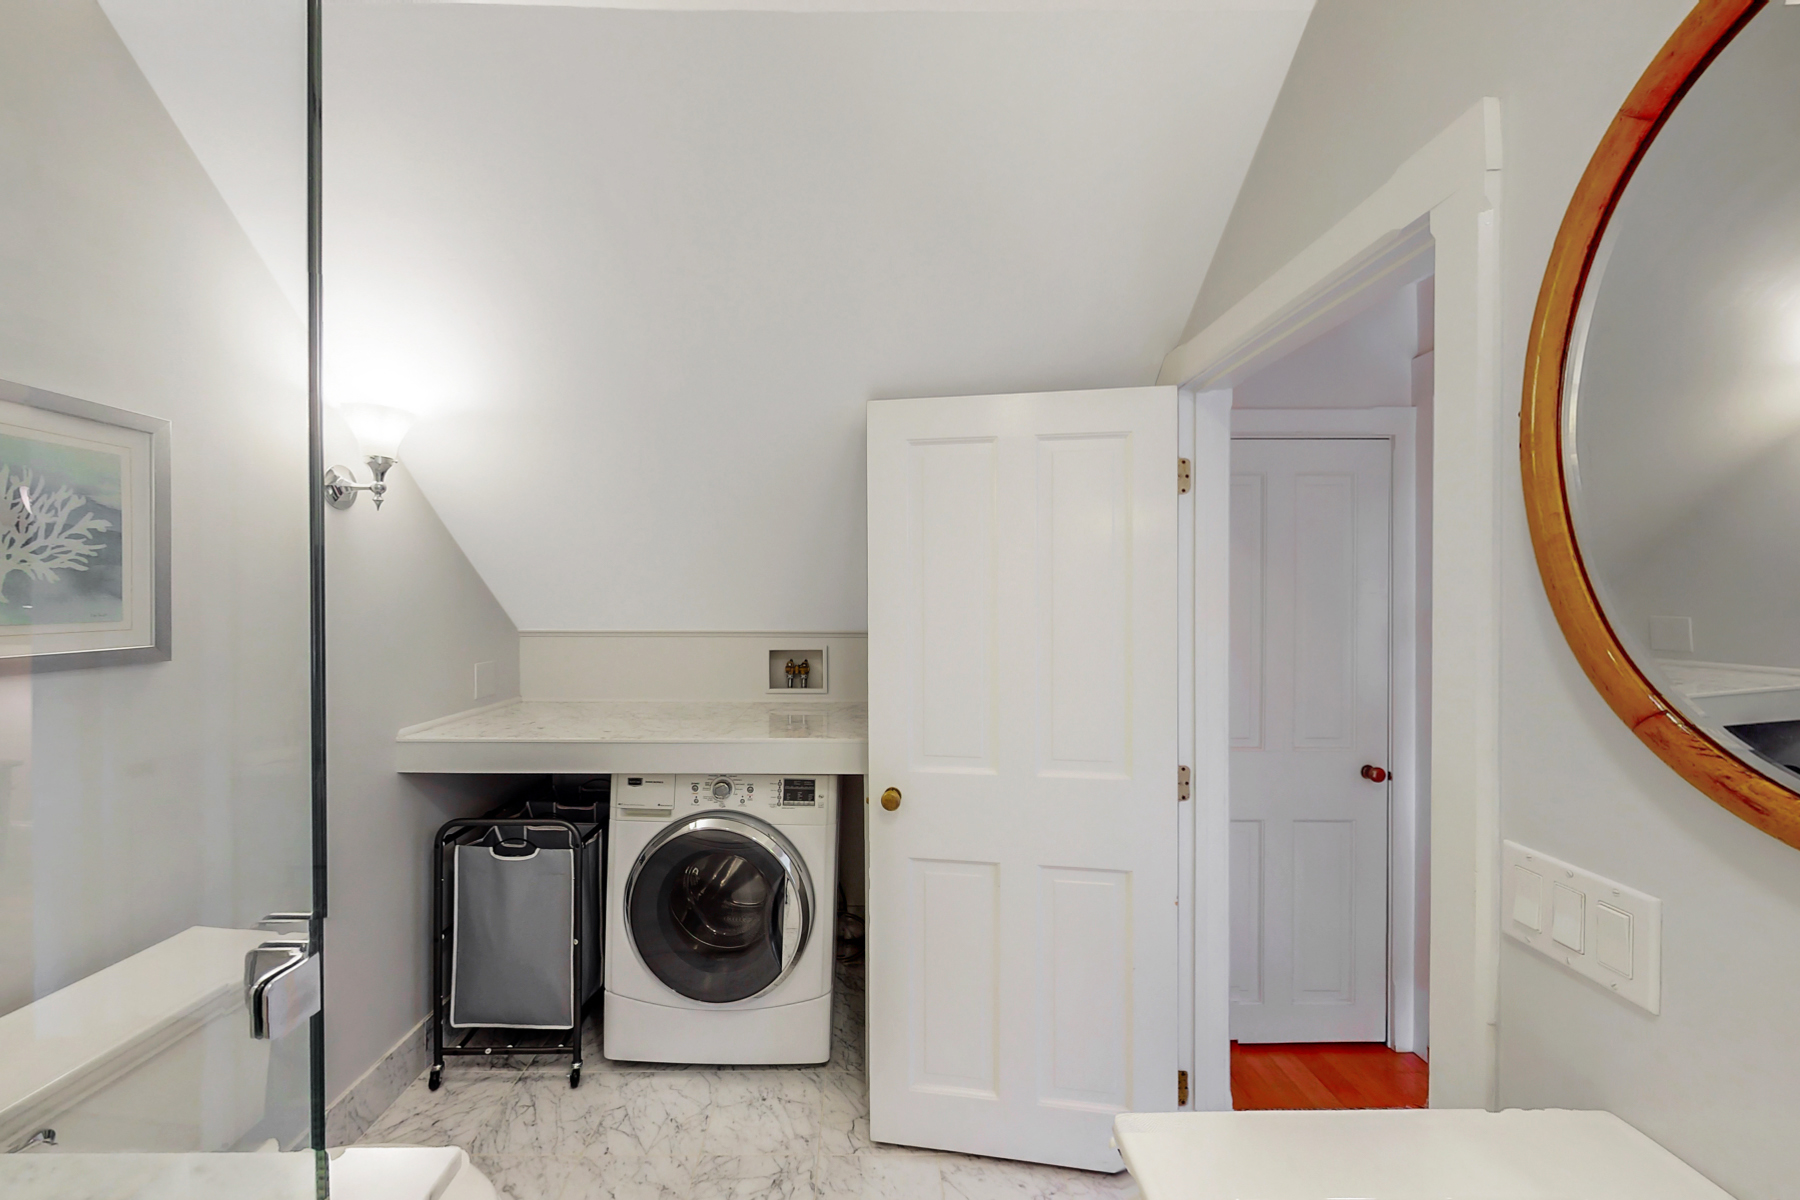 Additional photo for property listing at The Hedges 6 Howe Avenue, Unit 6 Newport, Rhode Island 02840 United States